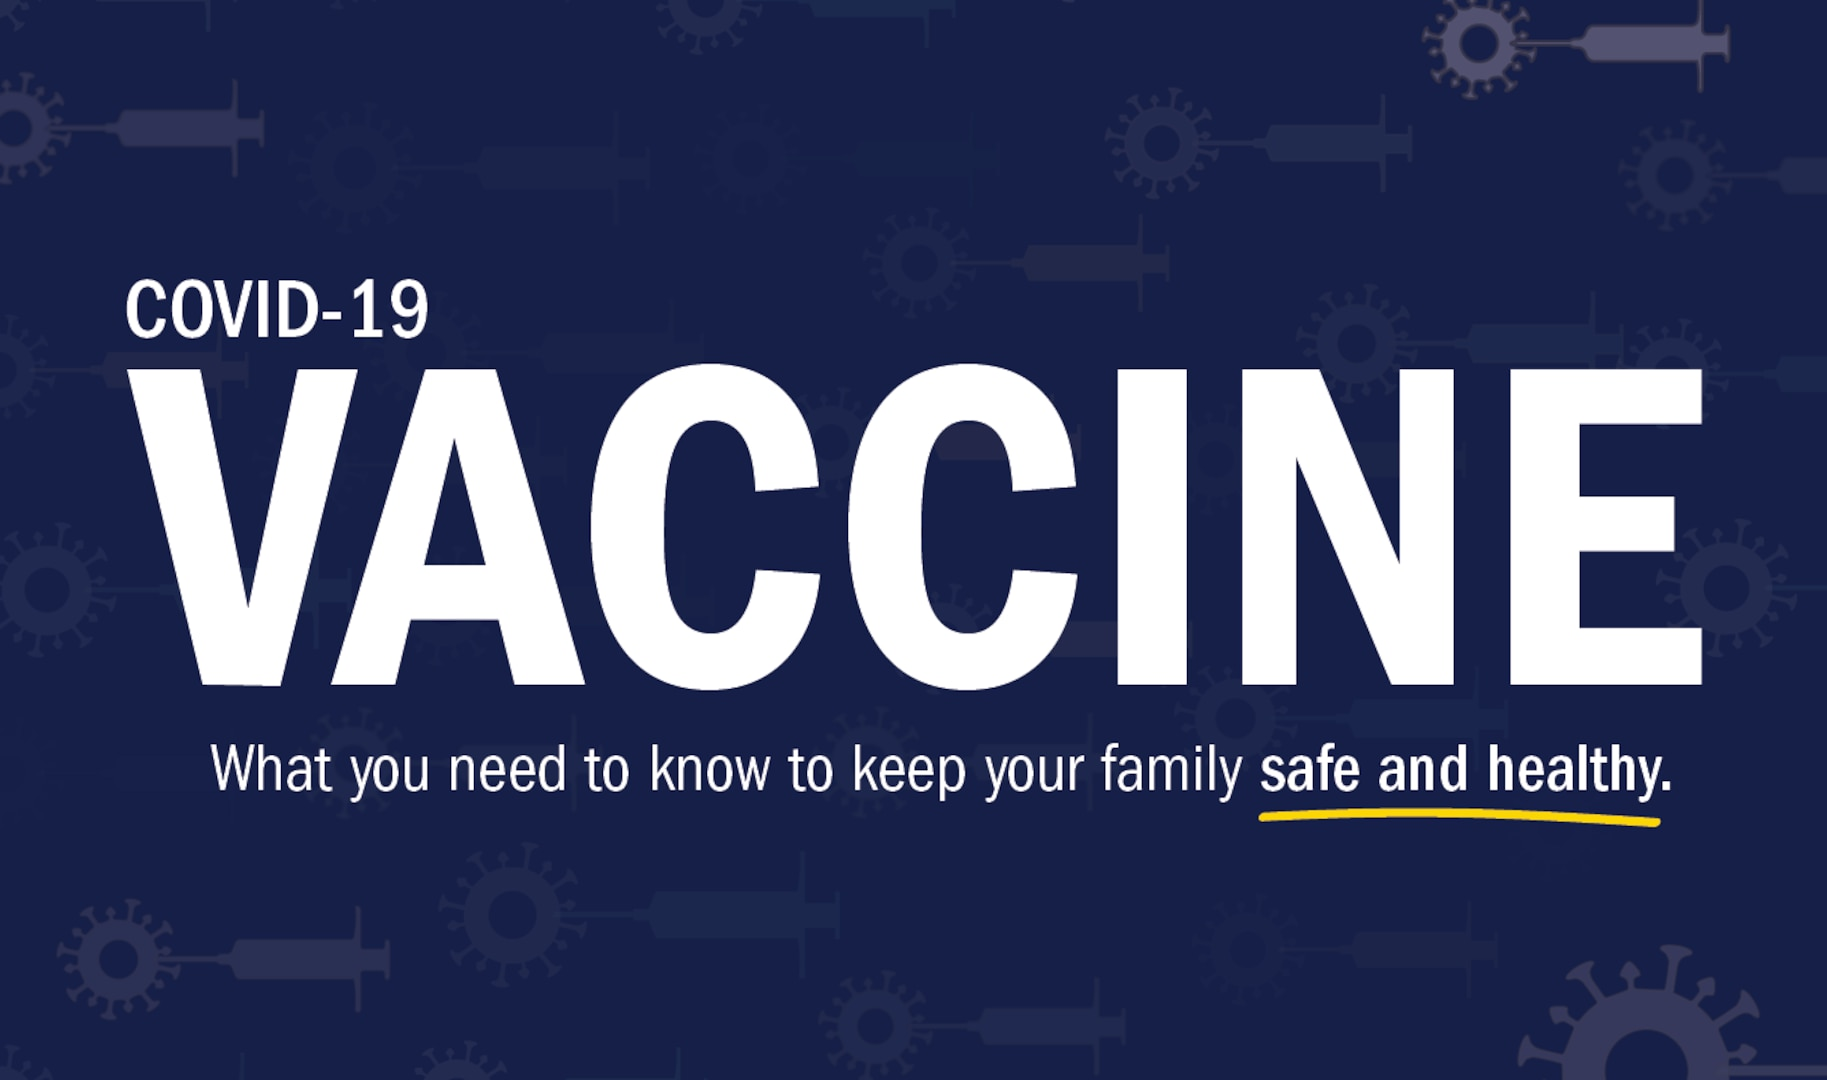 COVID-19 Vaccine - What you need to know to keep your family safe and healthy